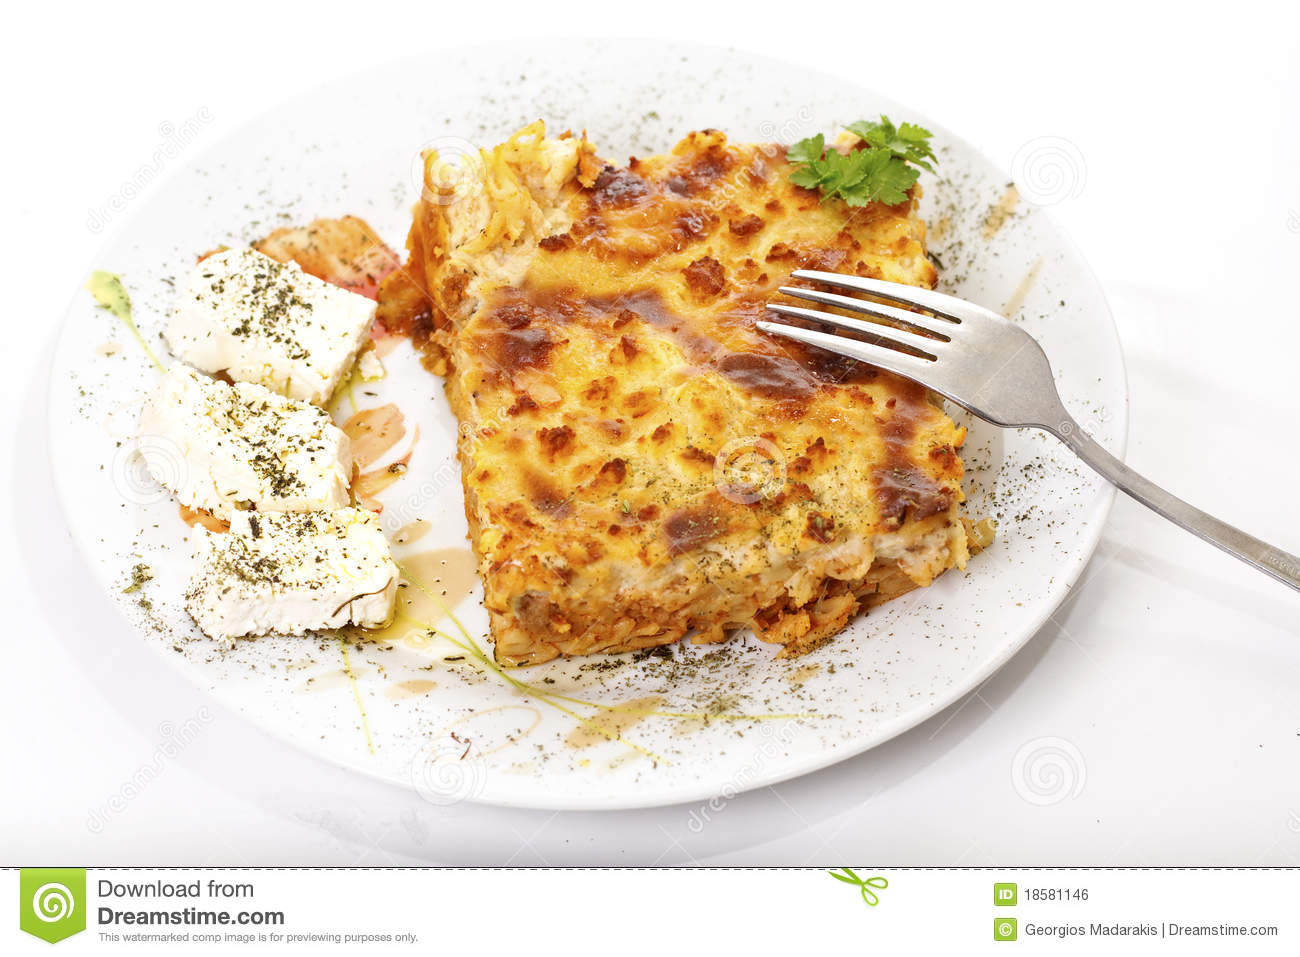 Pastitsio, nourriture traditionnelle grecque